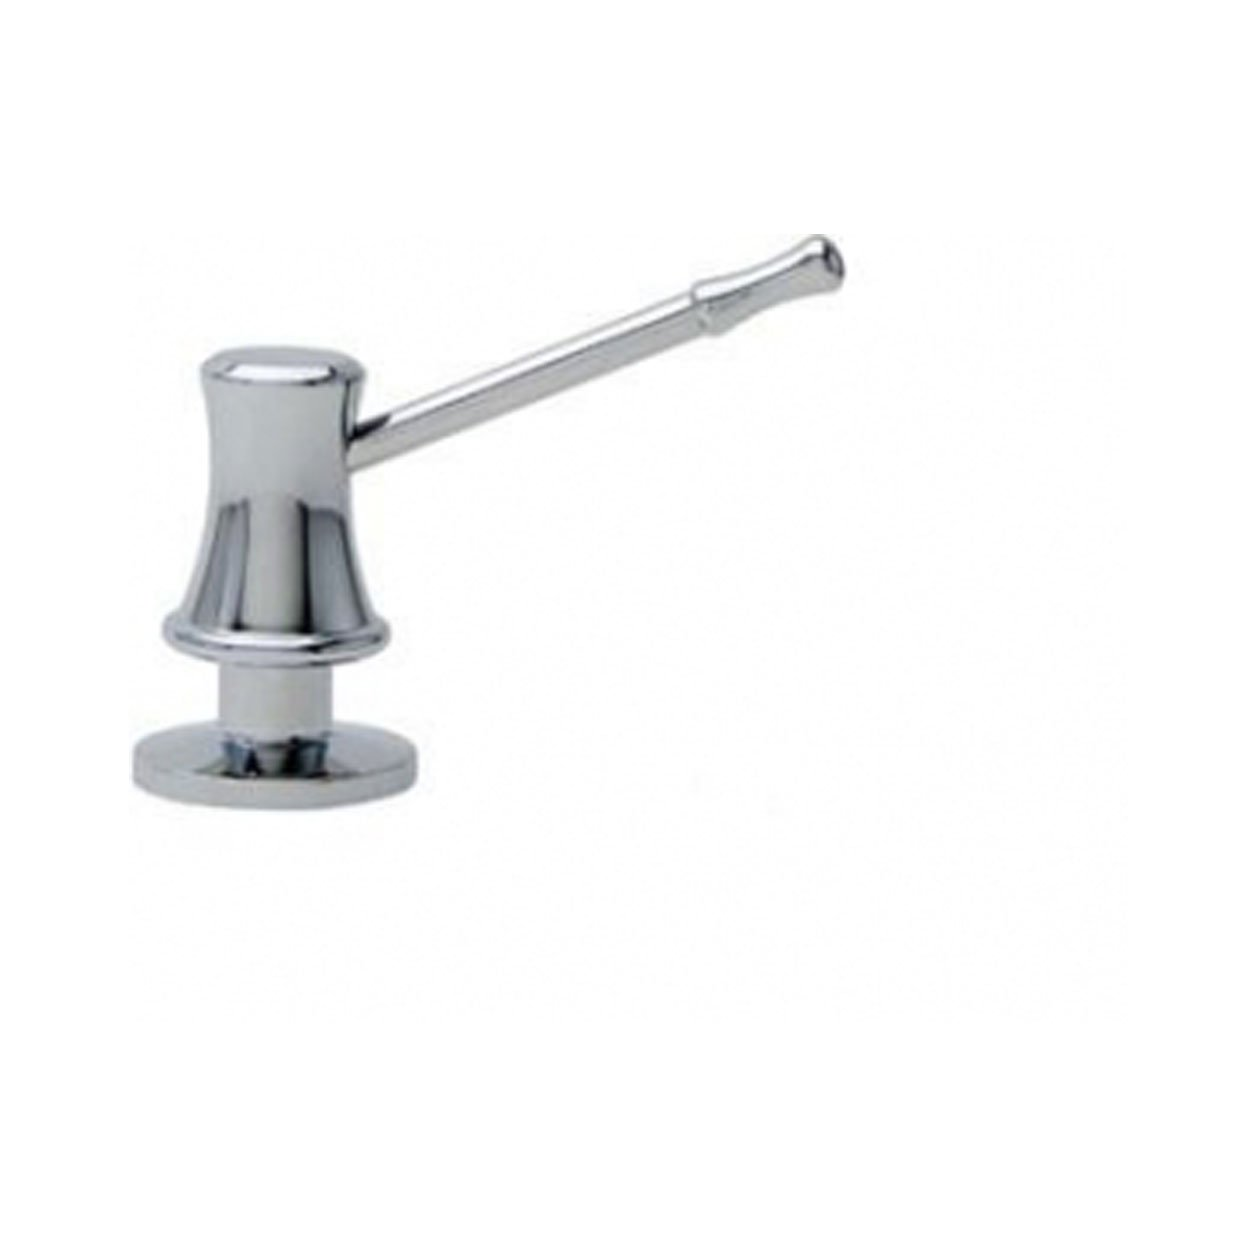 Franke SDFH180 Farmhouse In-Sink Soap or Lotion Dispenser, Satin Nickel by Franke